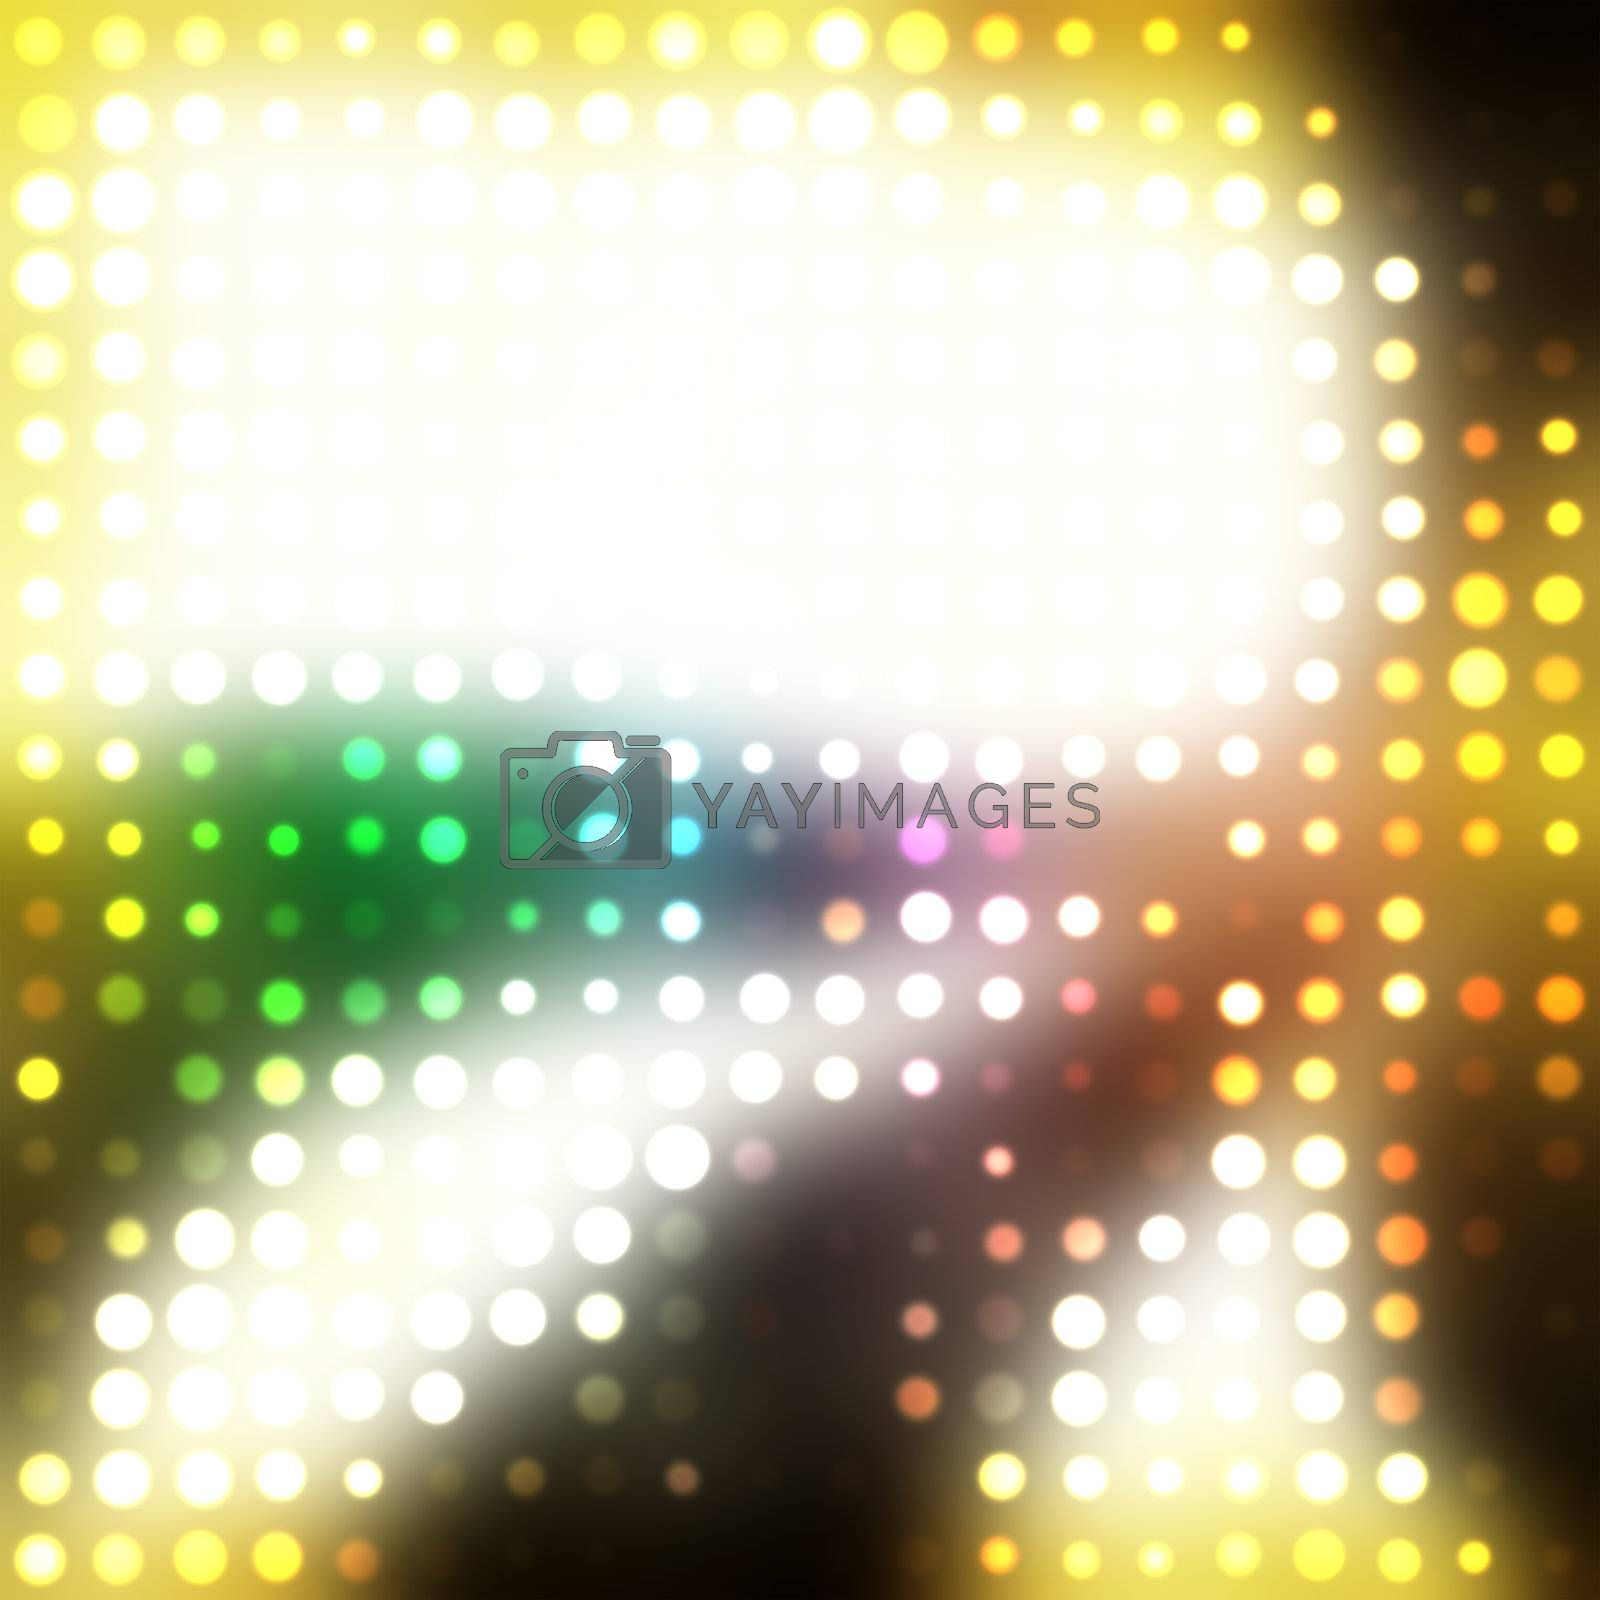 A rainbow colored halftone texture with glowing circles and plenty of copyspace.